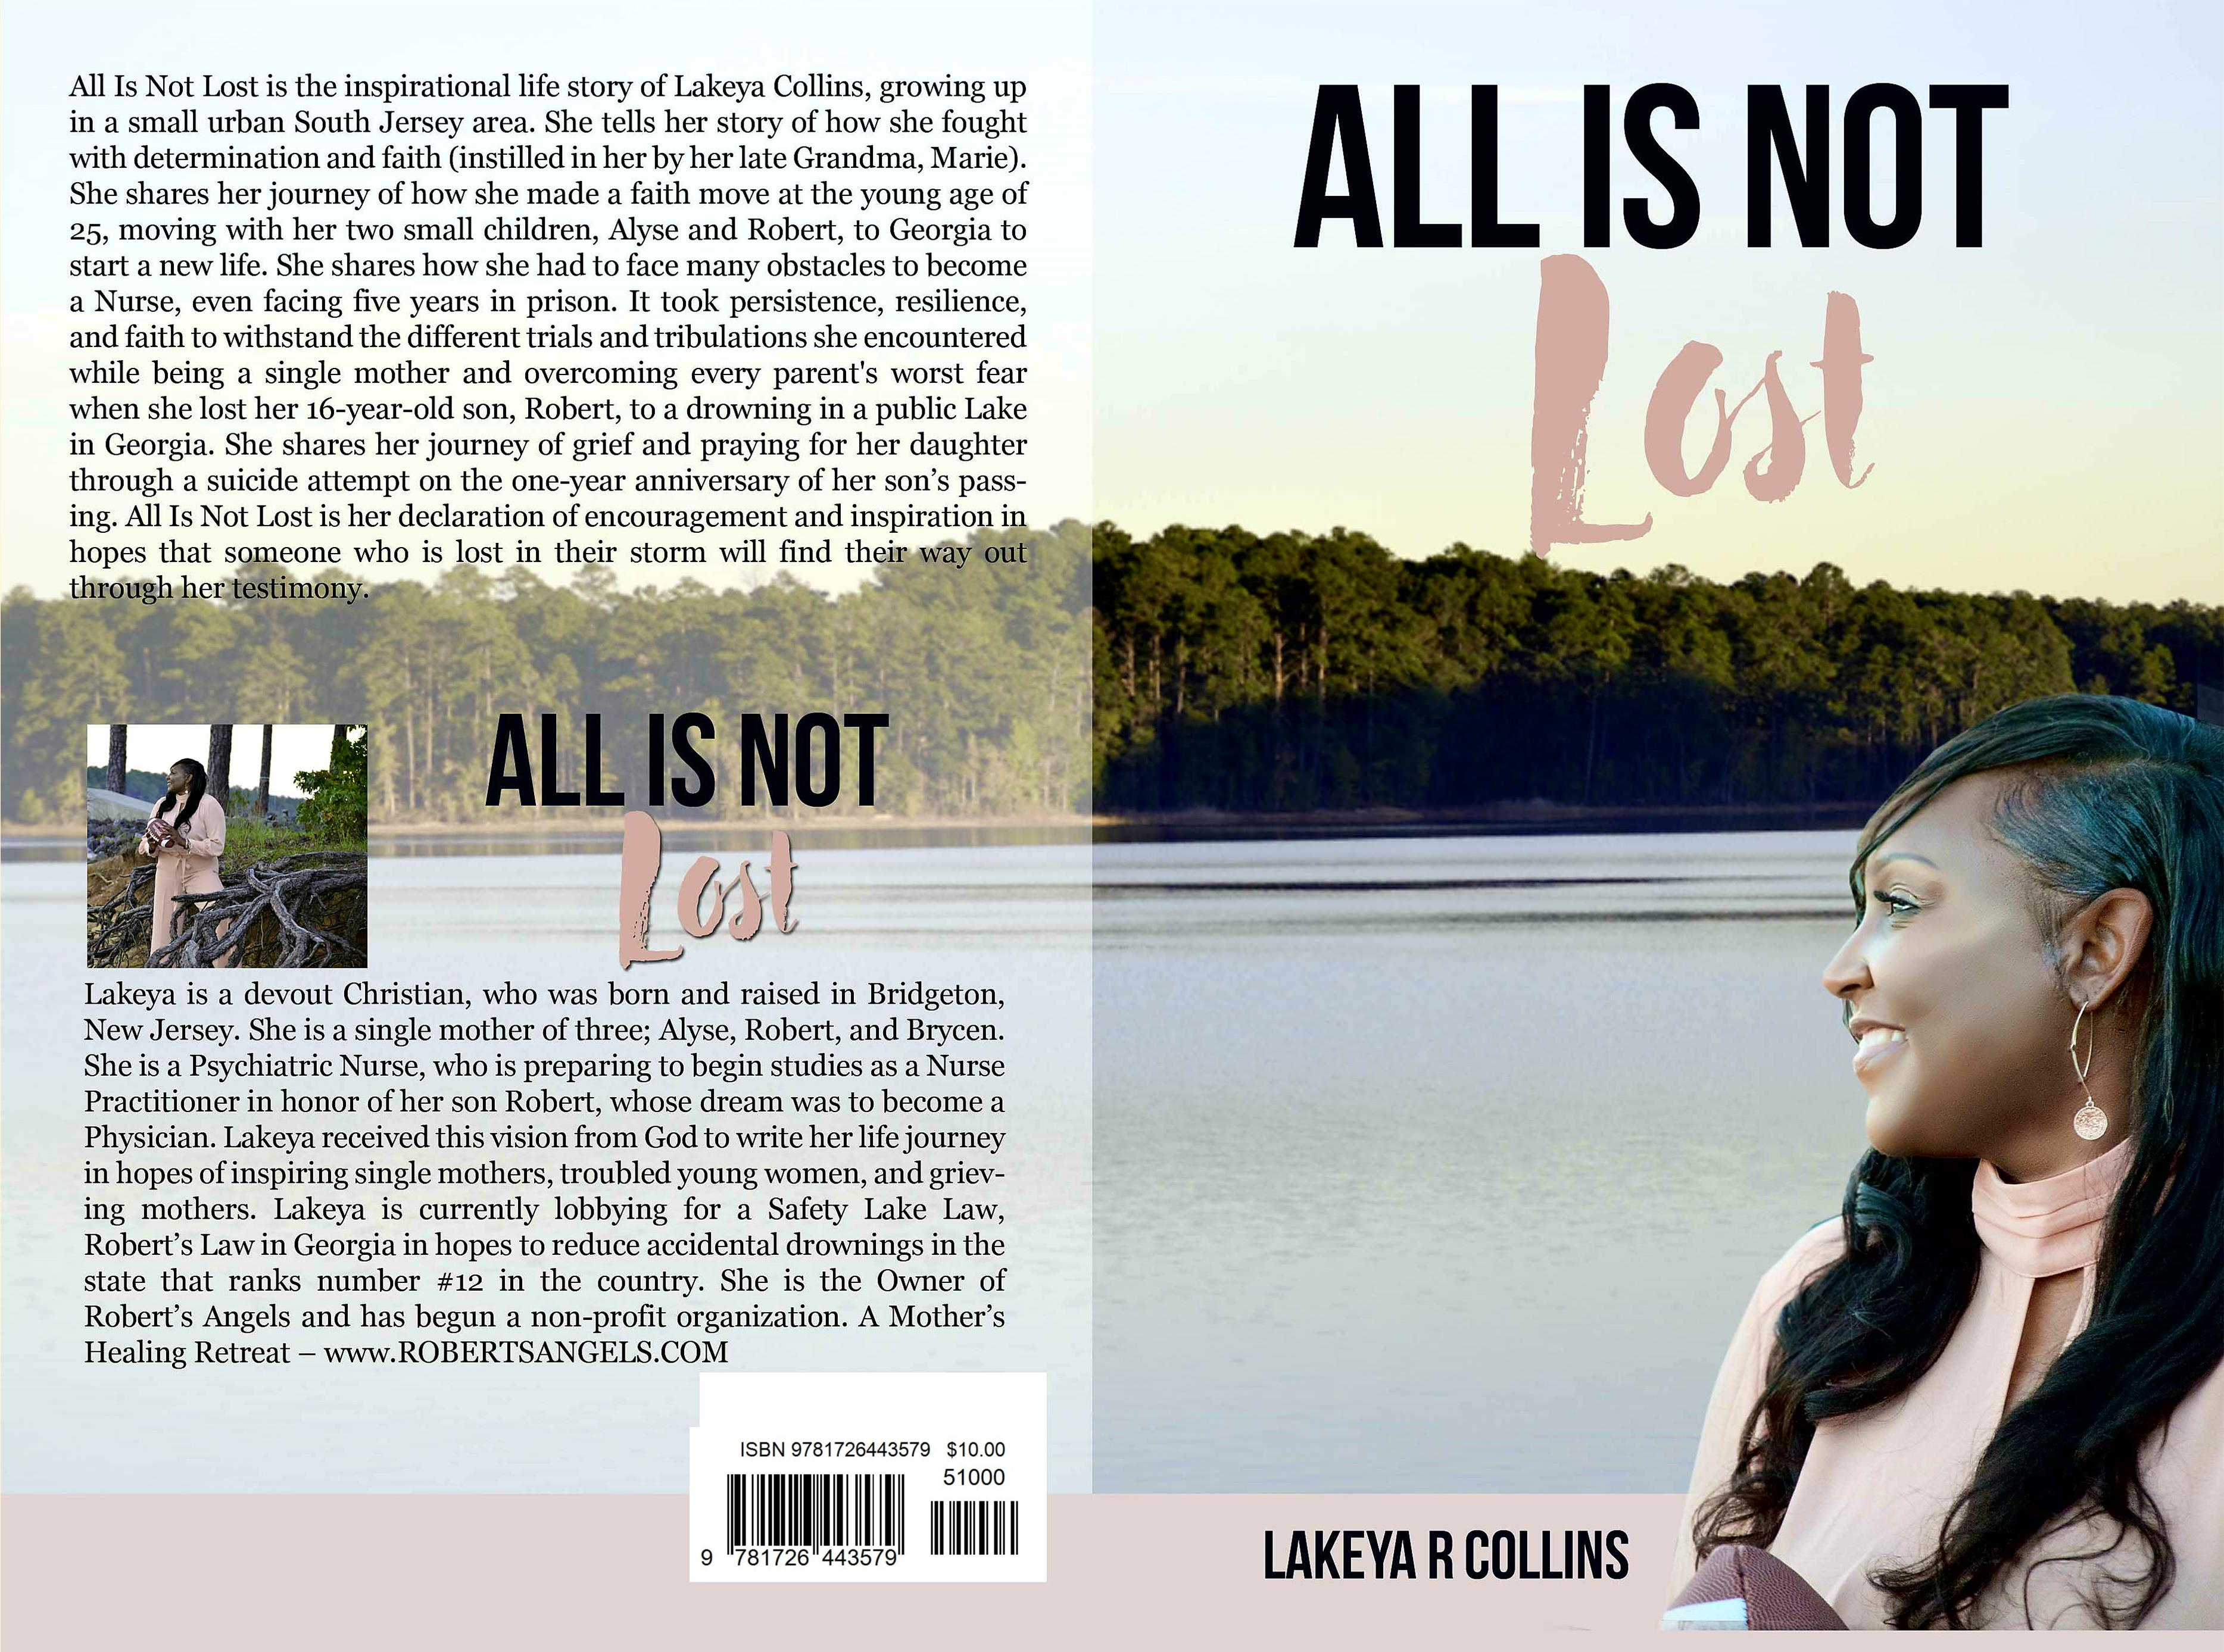 All Is Not Lost cover image